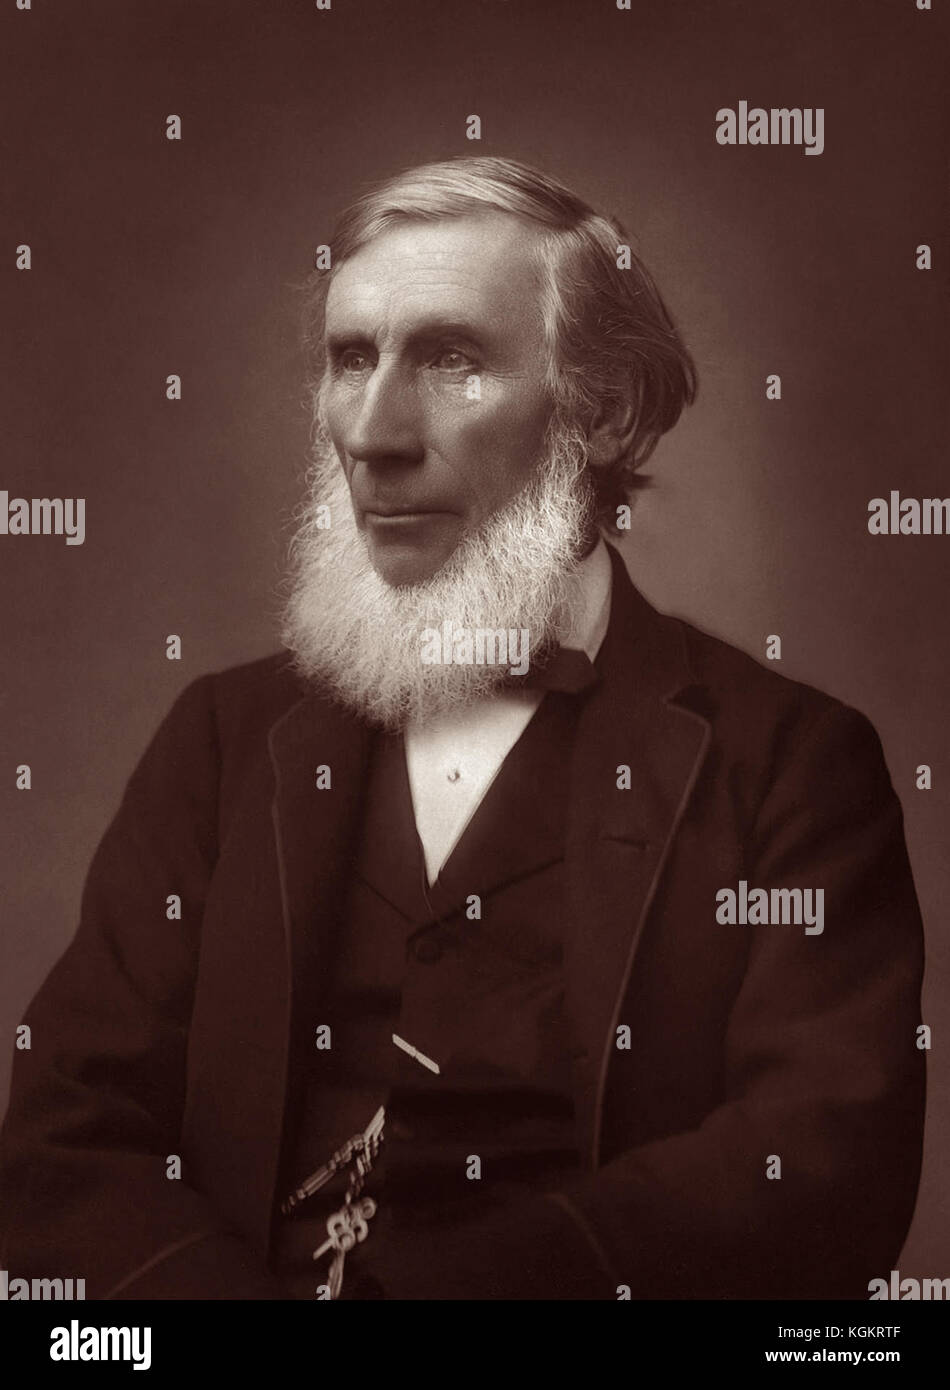 John Tyndall (1845-1896), Irish natural philosopher and scientist, in a c1885 portrait photo by Herbert Rose Barraud. - Stock Image